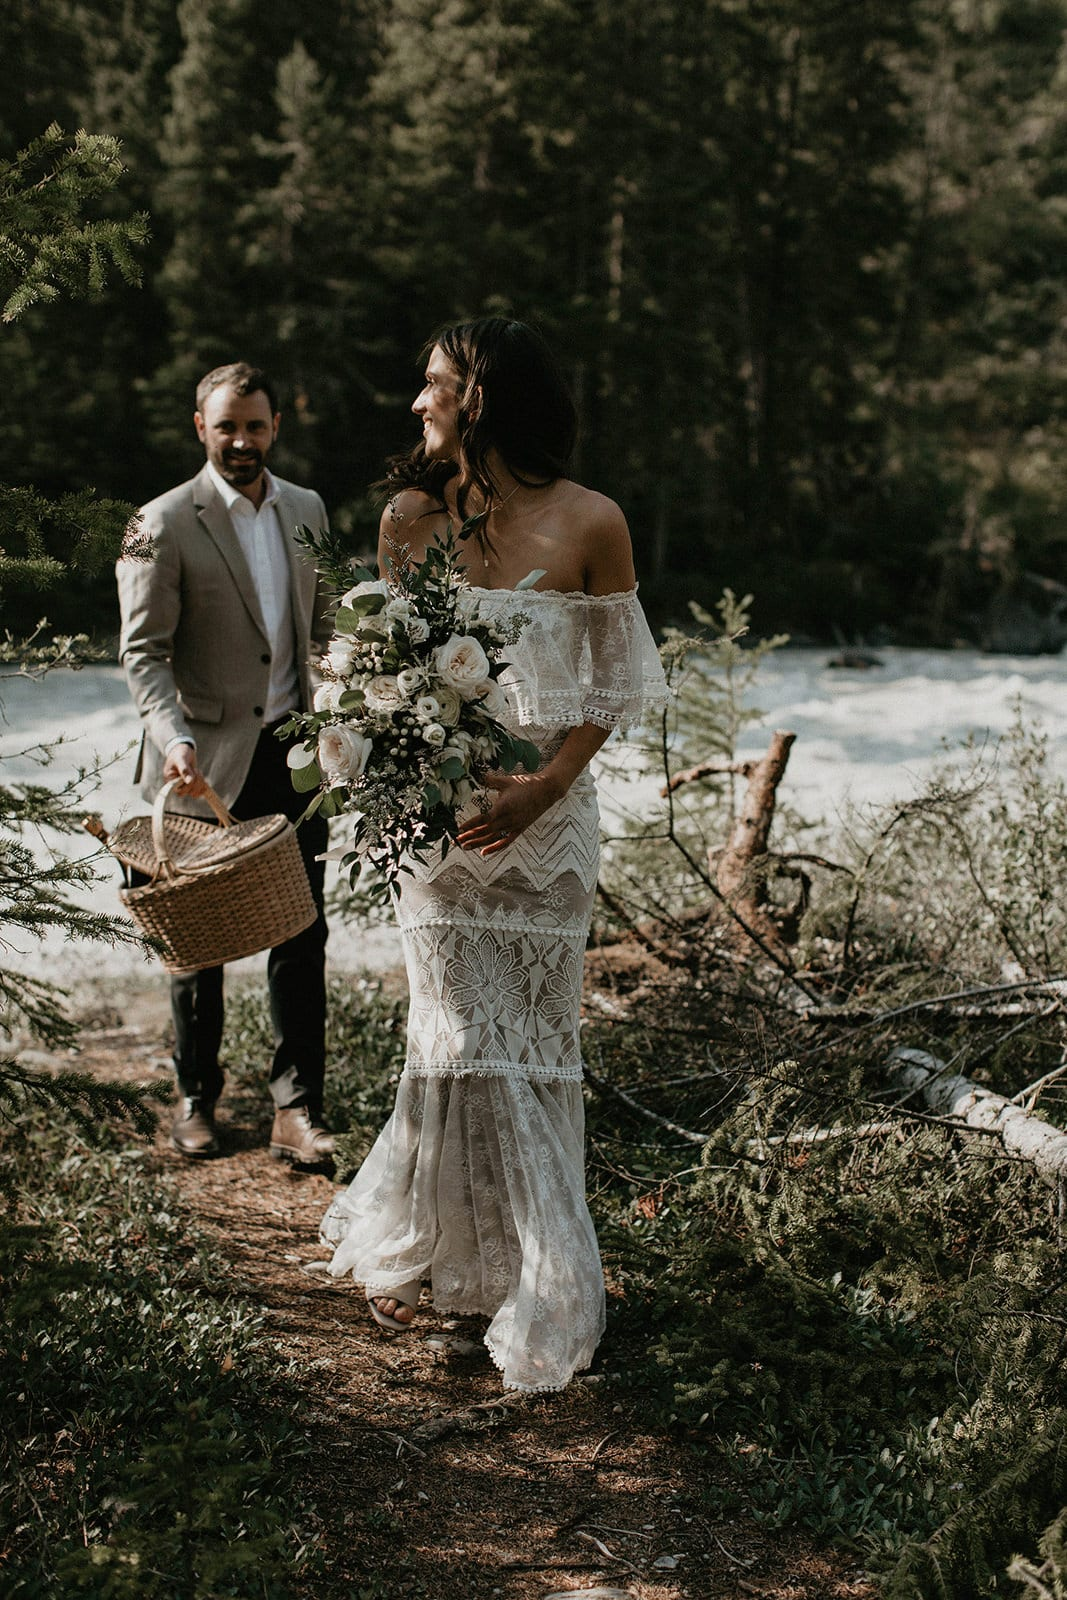 Brunette bride wearing Grace Loves Lace Emanuela Gown walking with groom through forest path beside river